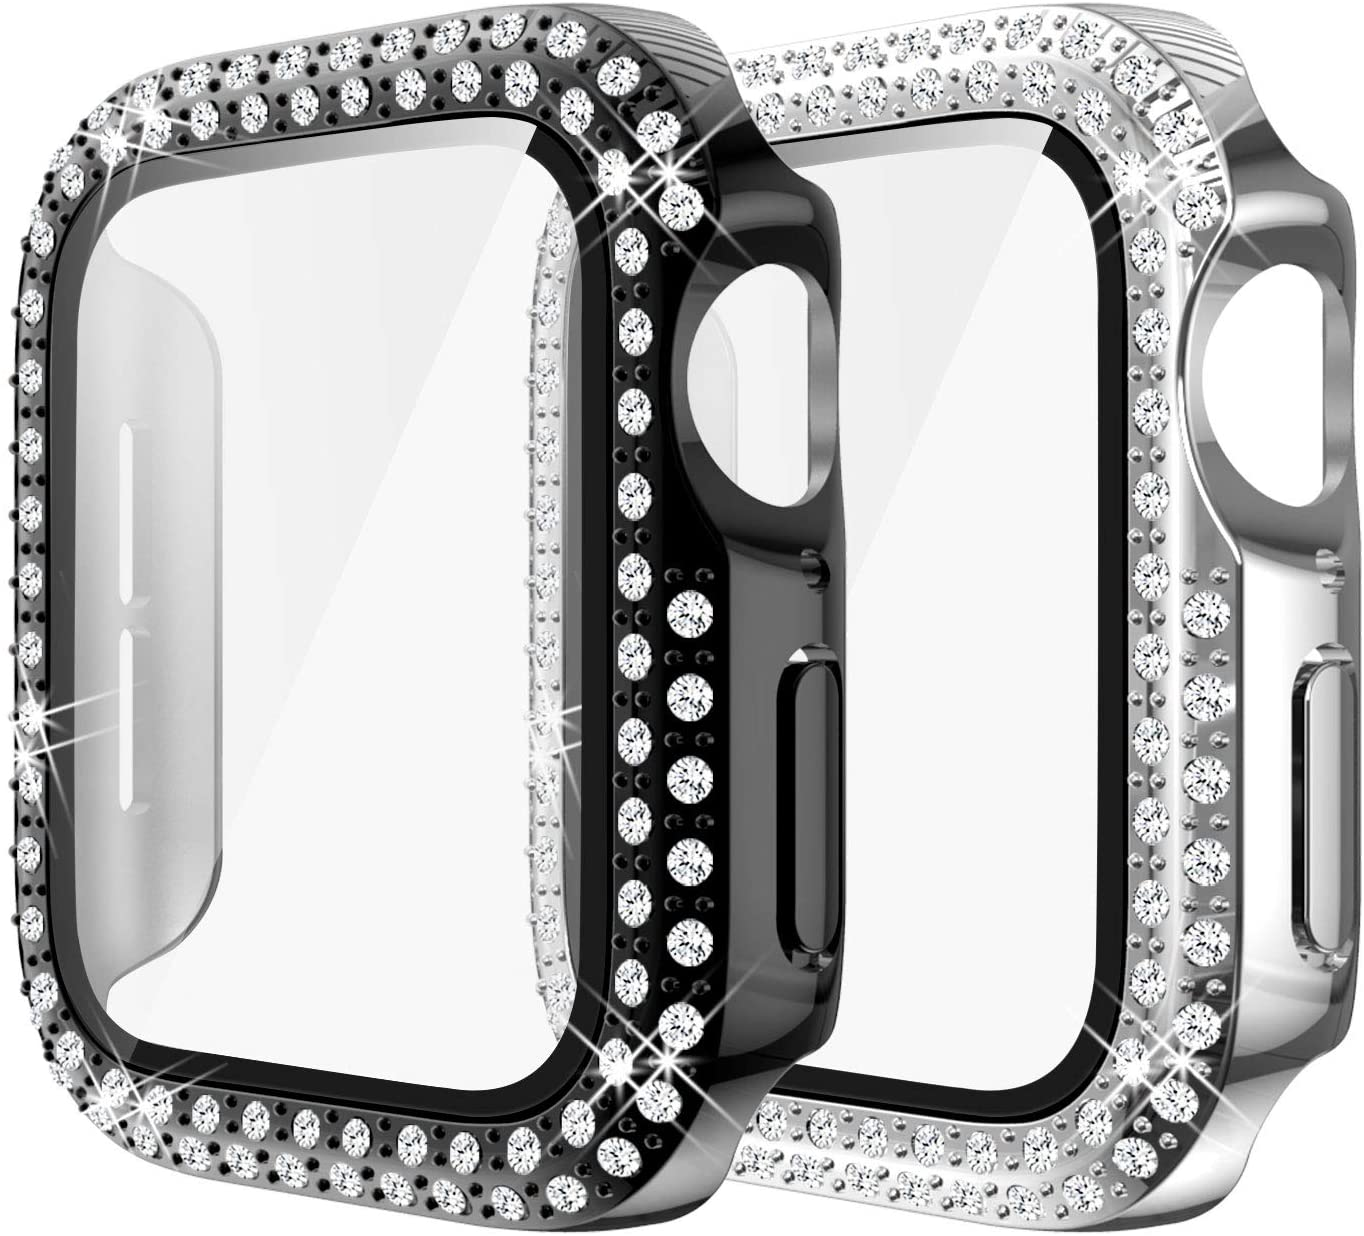 Yolovie (2-Pack) Compatible for Apple Watch Case with Screen Protector 40mm Series 6/5/4/SE, Bling Cover Diamonds Rhinestone Bumper Protective Frame for iWatch Girl Women (Black/Silver)